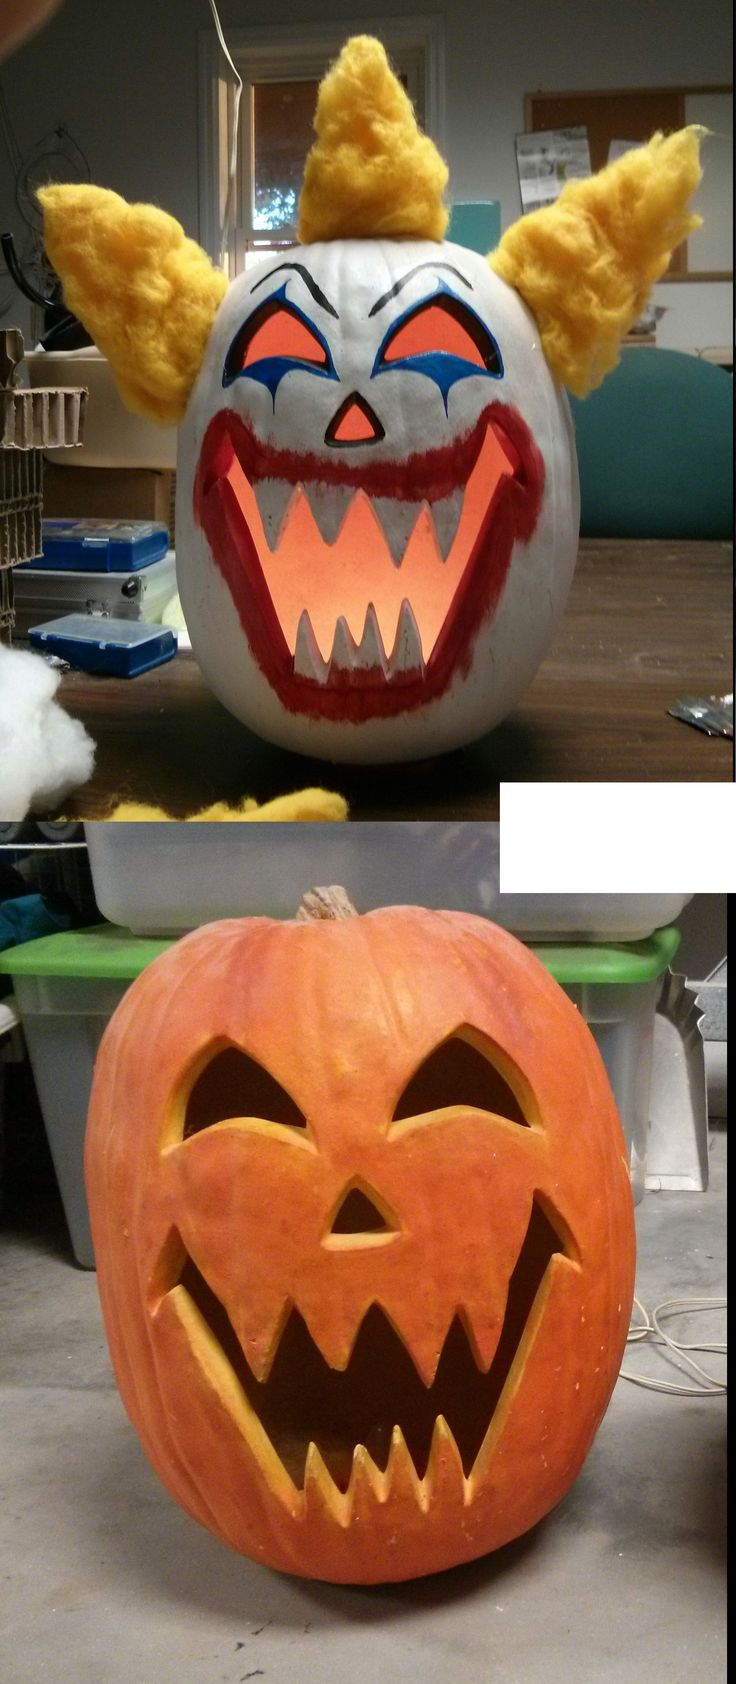 Dollar yardsale find turned into theme pumpkin. Created by emergencyfan for Le Chat Noir's 2015 Creepy Carnival Halloween